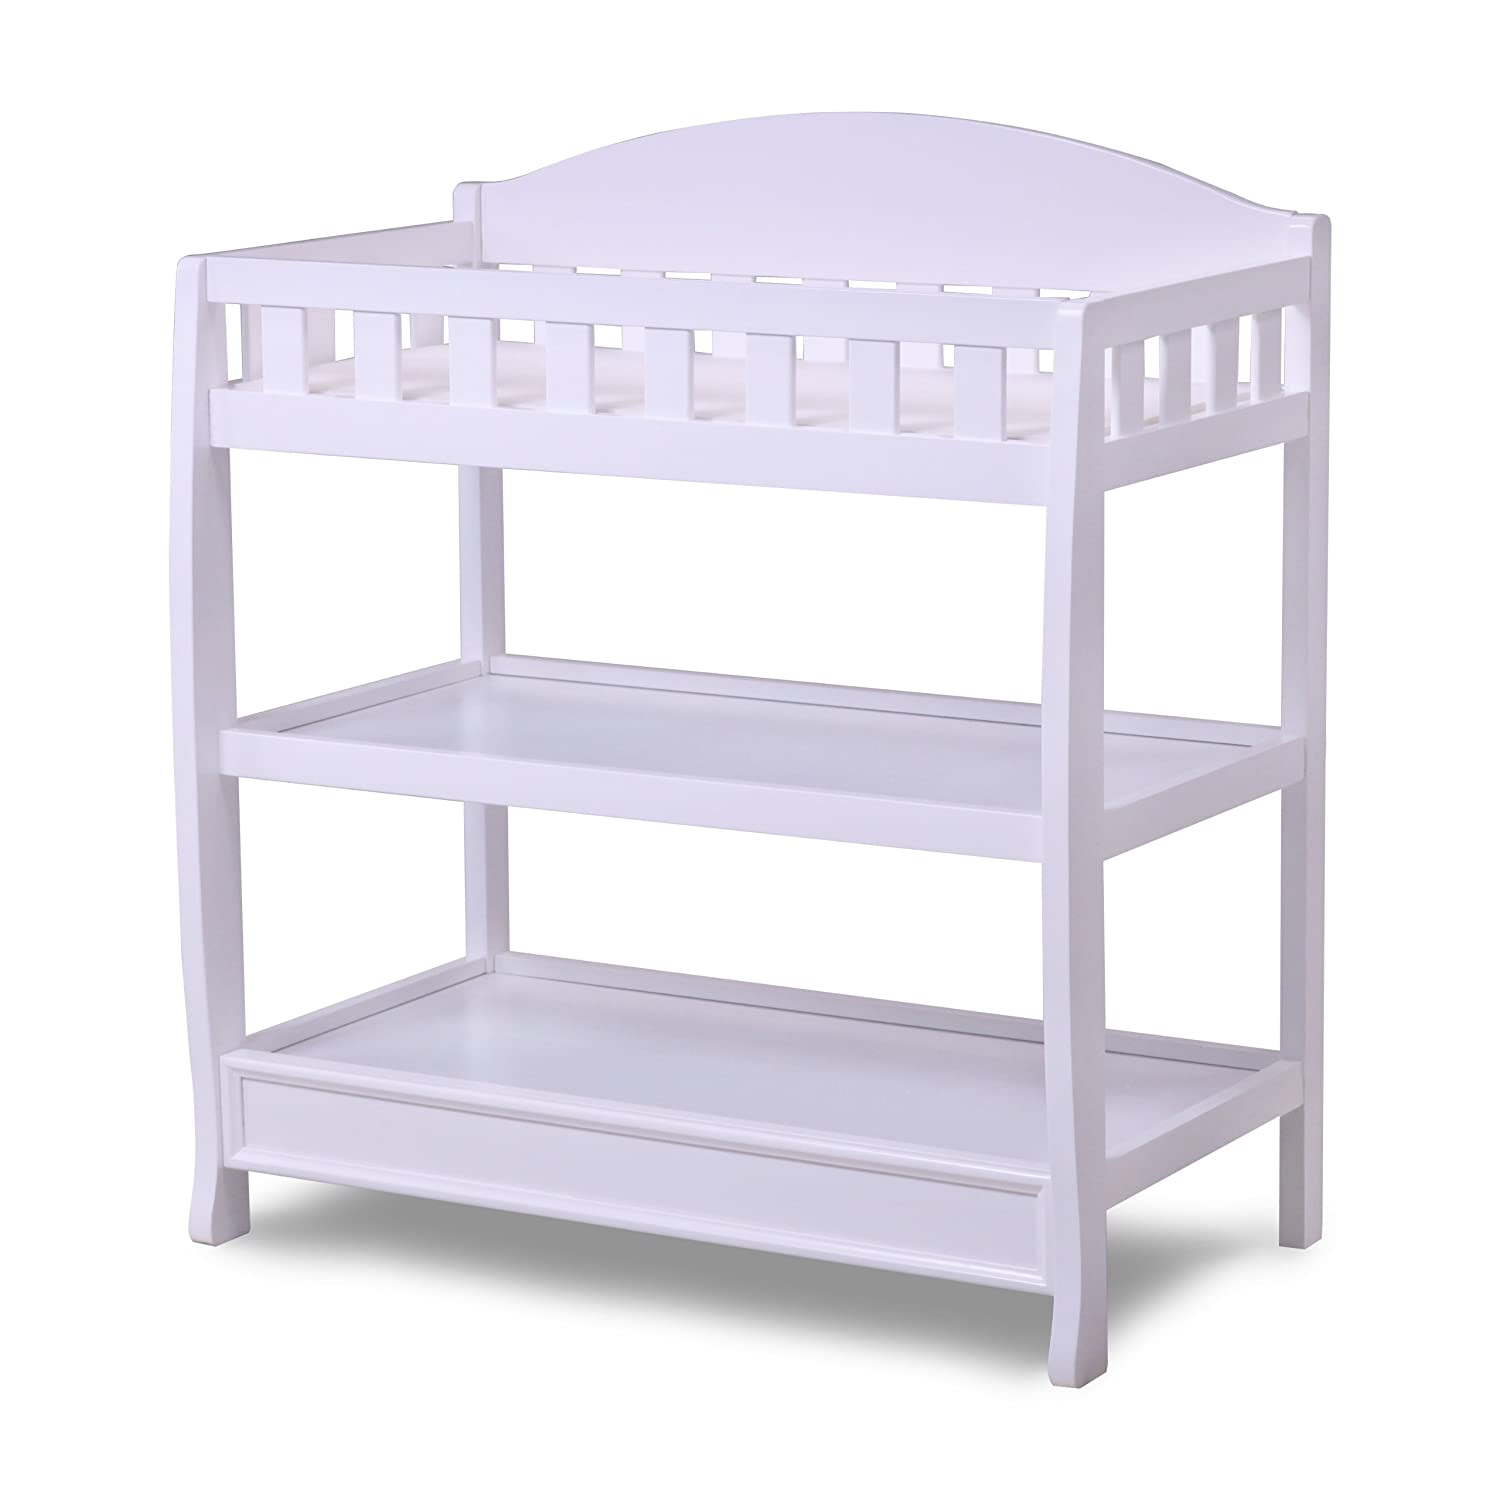 Superior Amazon.com : Delta Children Infant Changing Table With Pad, White : Baby